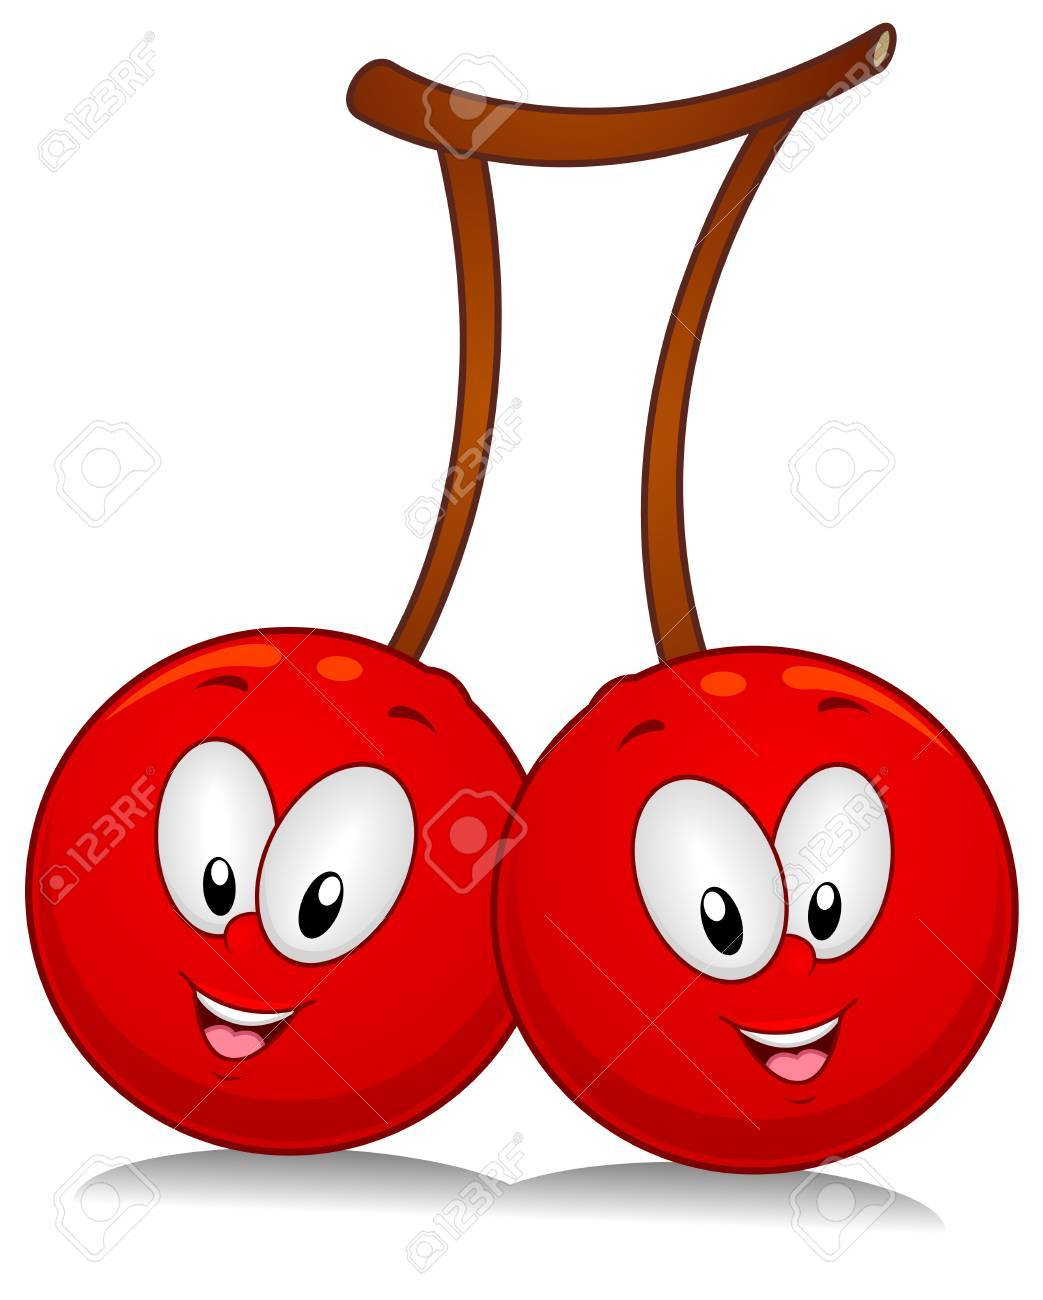 A Pair of Cherry Characters Poised Side by Side Stock Photo - 8268569